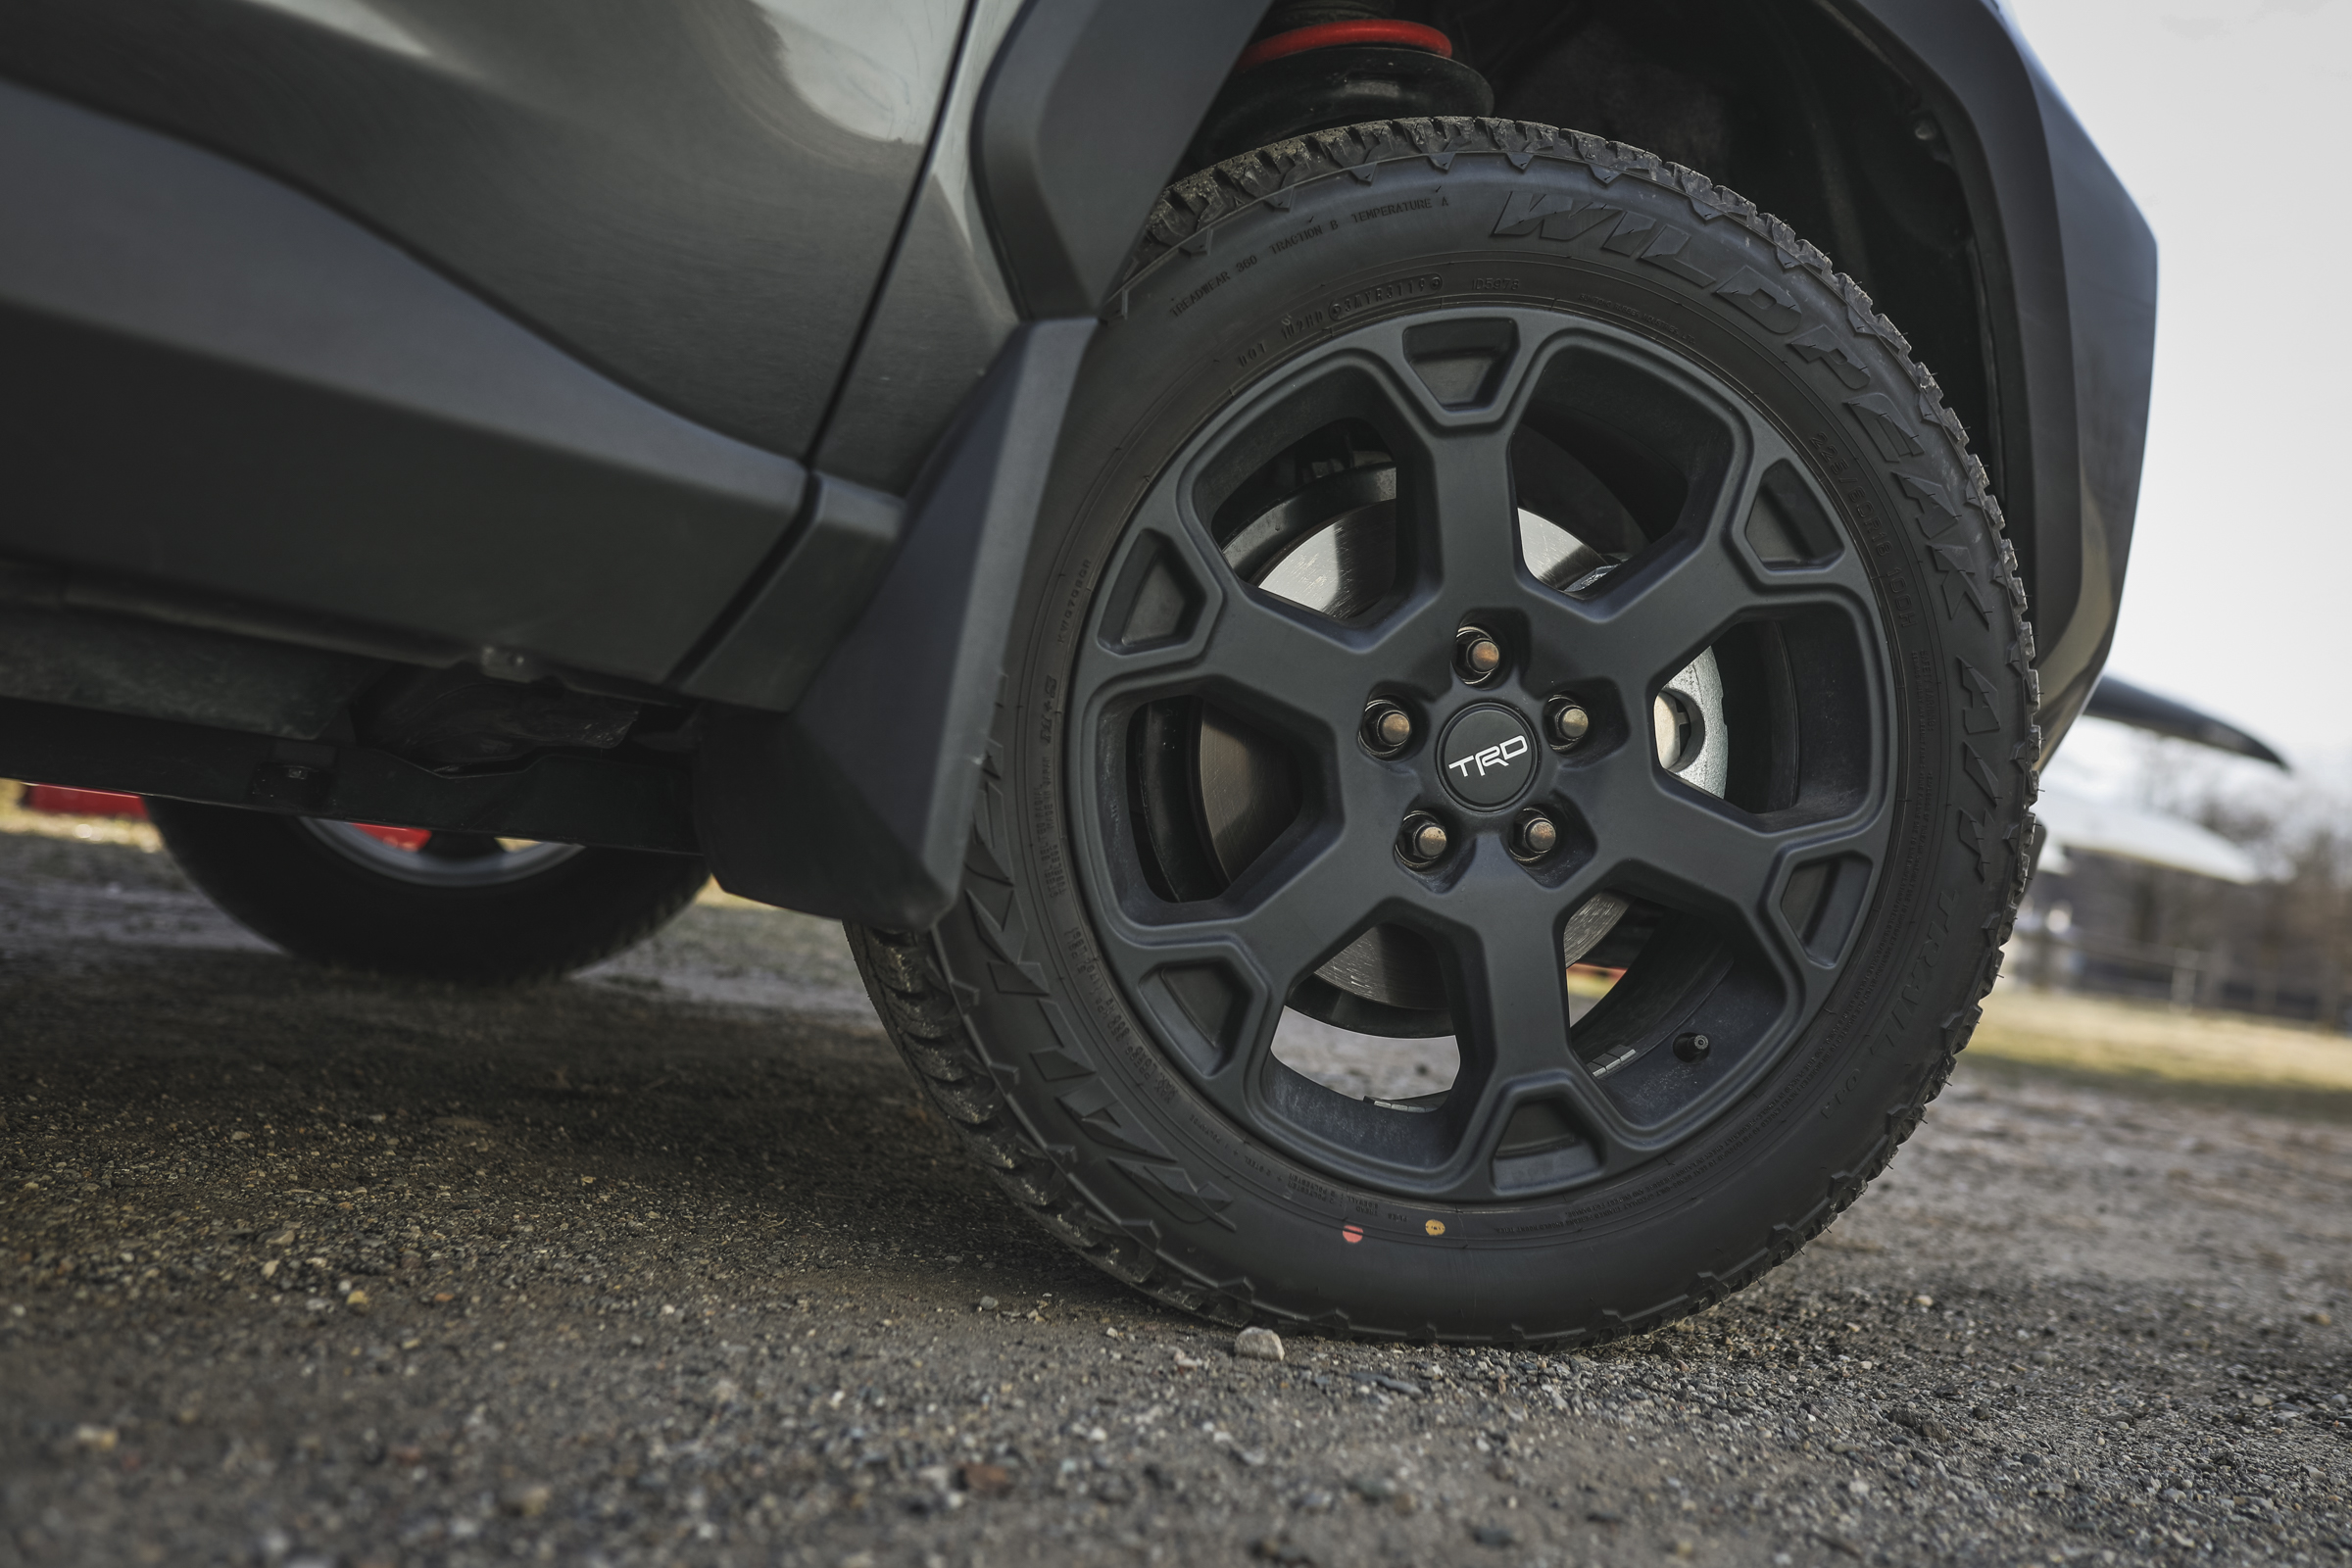 2020 Toyota RAV4 TRD Off-Road SUV full tire wheel front passenger